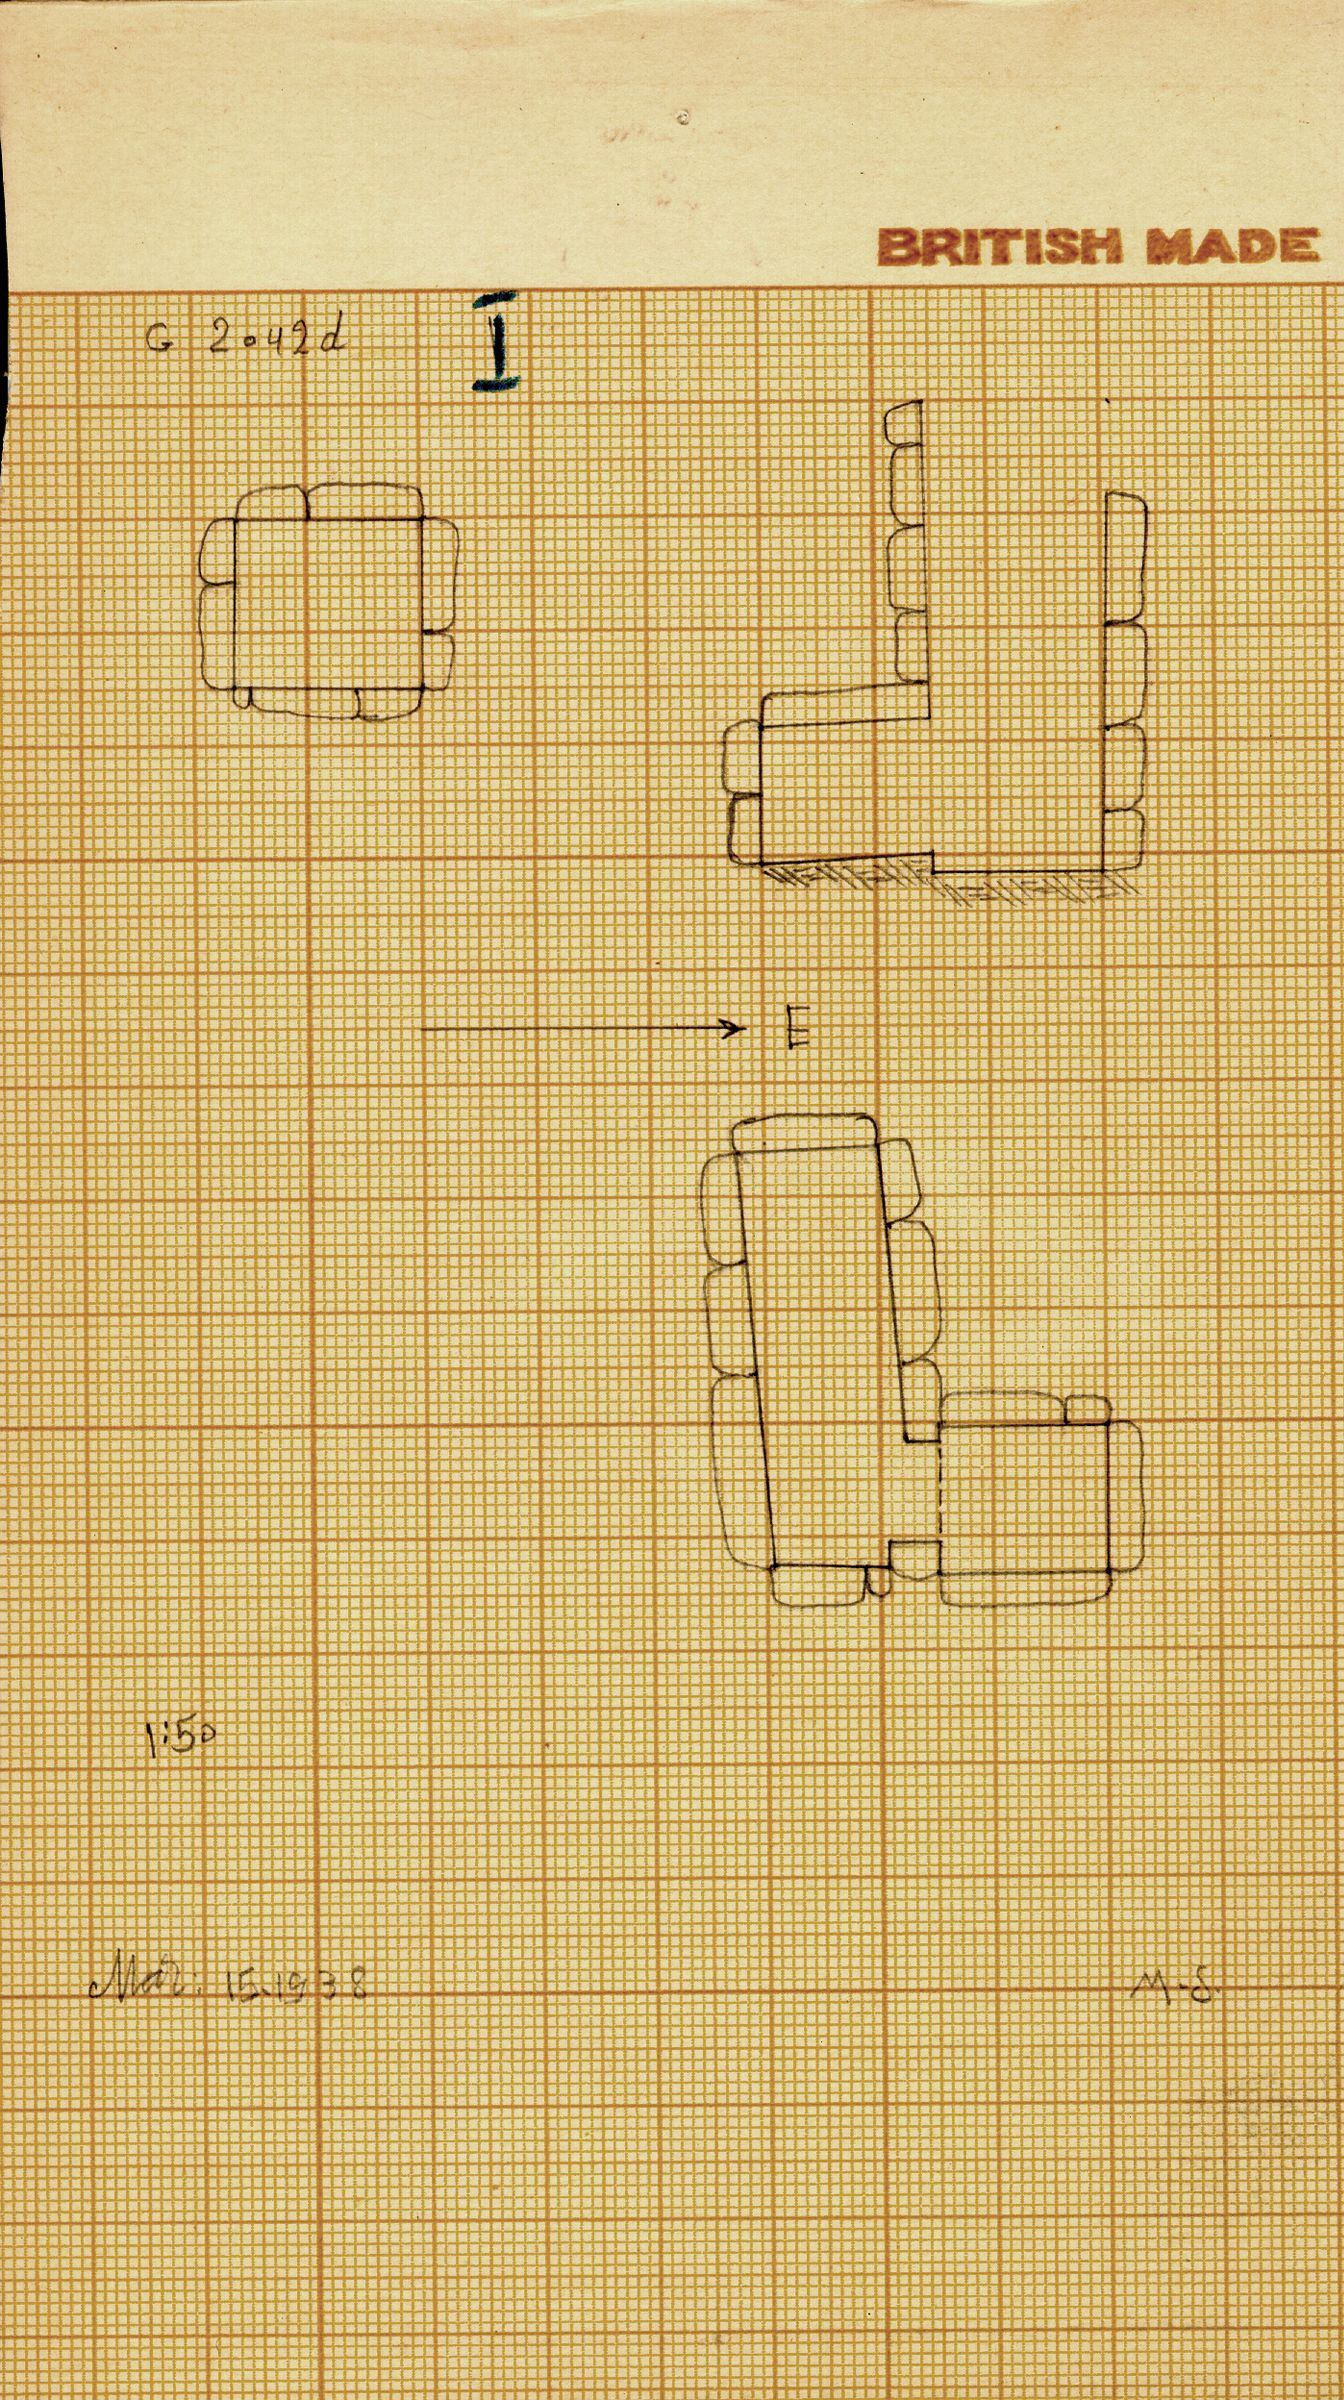 Maps and plans: G 2042d, Shaft I